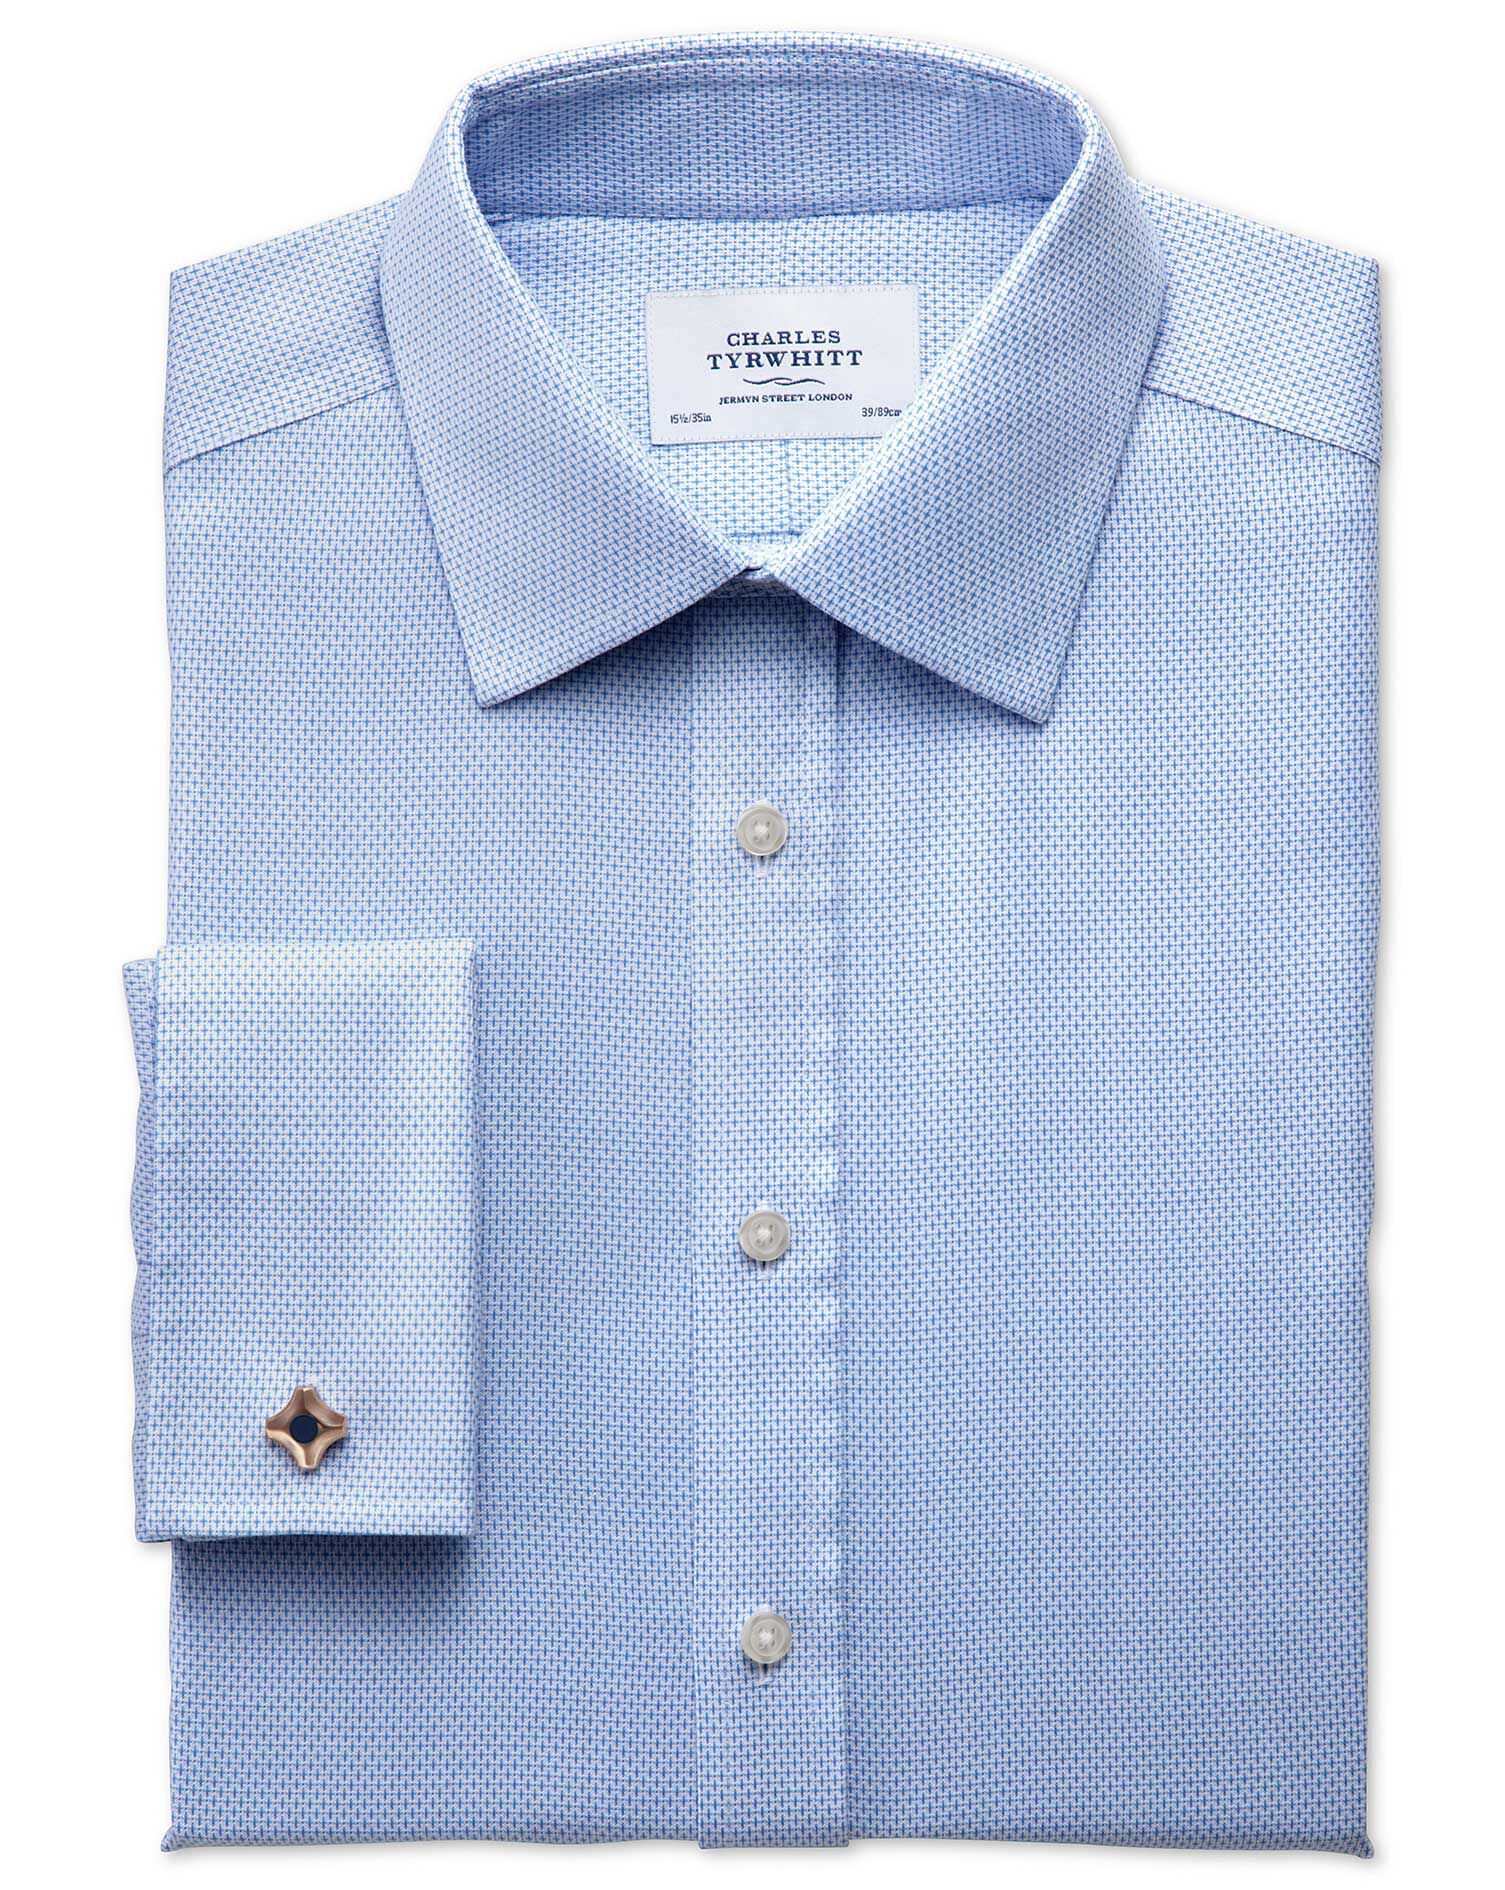 Classic Fit Non-Iron Imperial Weave Sky Blue Cotton Formal Shirt Single Cuff Size 16.5/38 by Charles